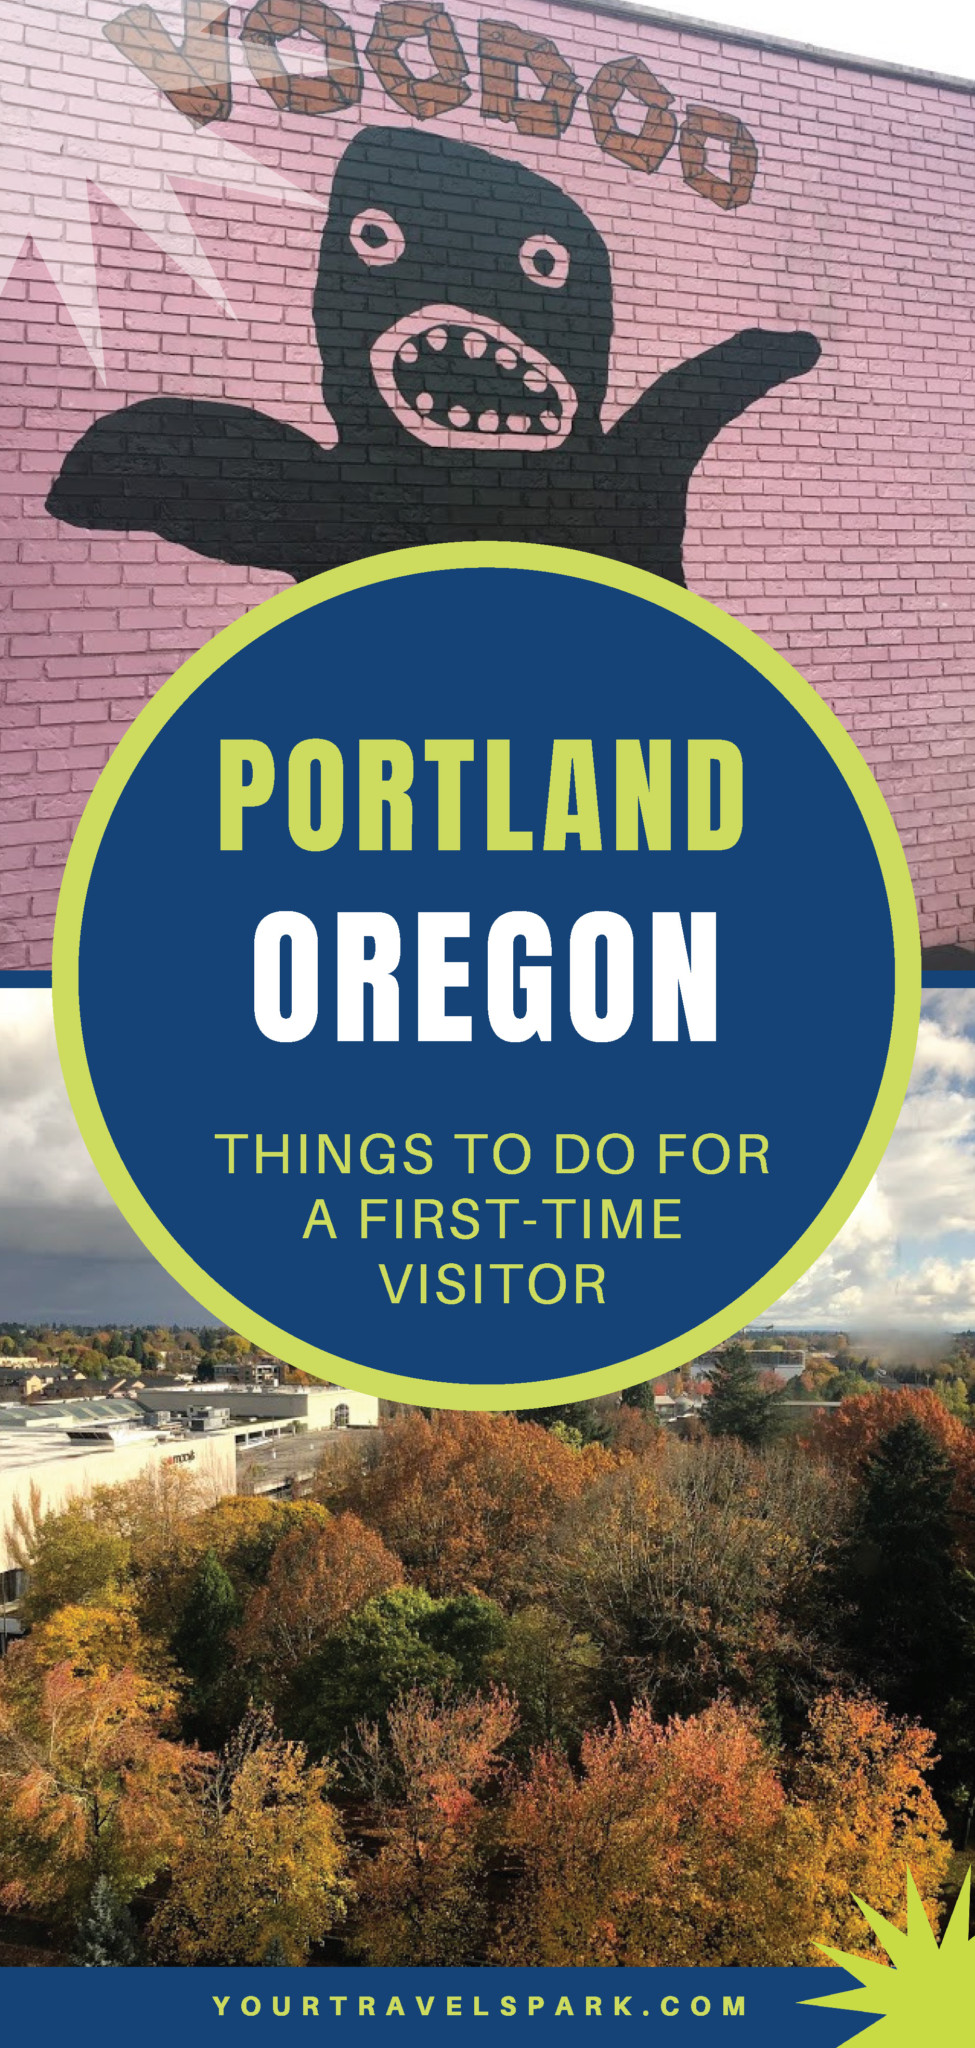 Portland, Oregon is a beautiful destination. Whether you're staying downtown or want to road trip, here are our favorite things to do in Portland for a first-time visitor. #portland #portlandor #portlandoregon #oregon #cannonbeach